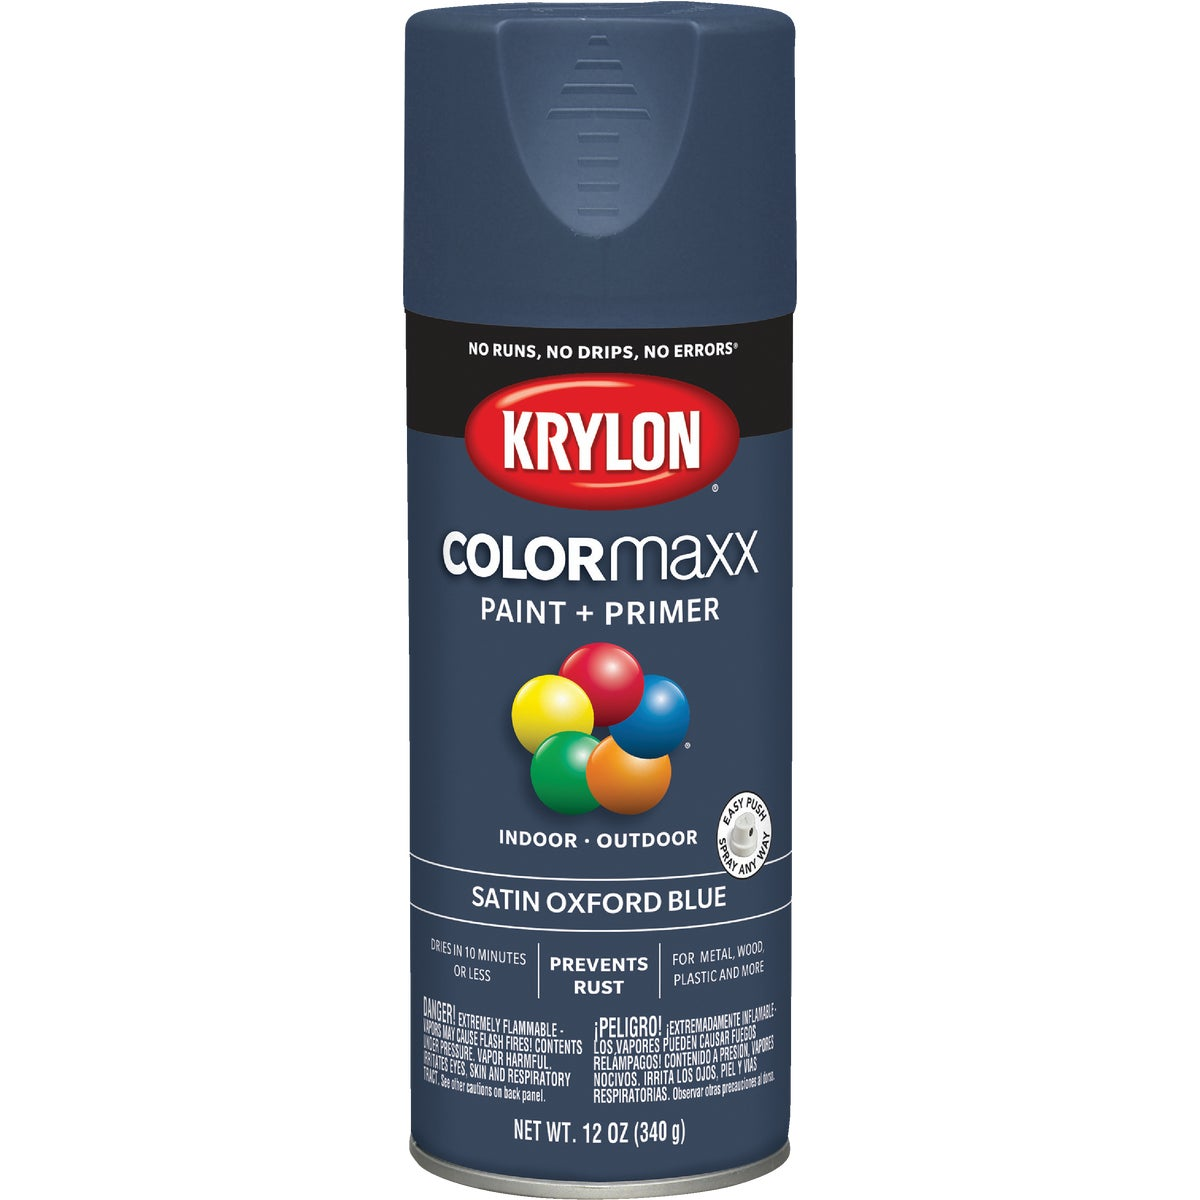 SAT OXF BLUE SPRAY PAINT - 53523 by Krylon/consumer Div